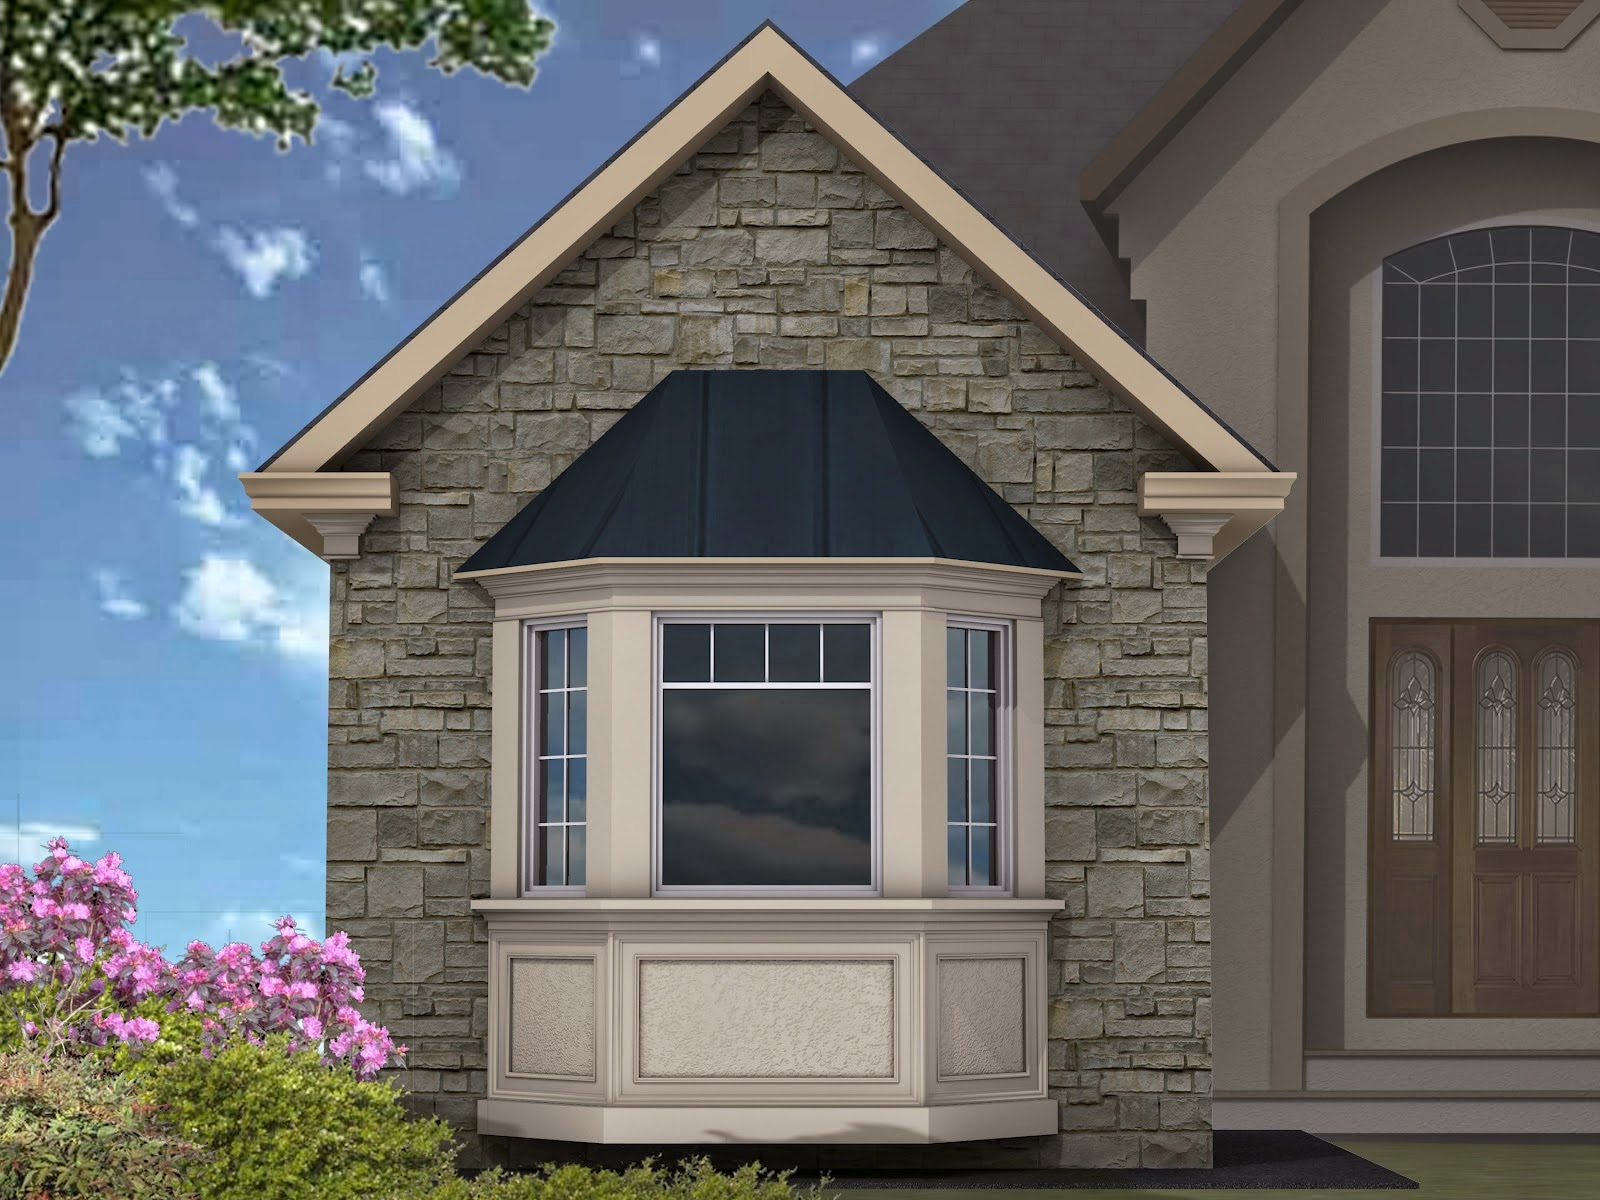 Smart Home Designs 3d Model Of Window Exterior Design